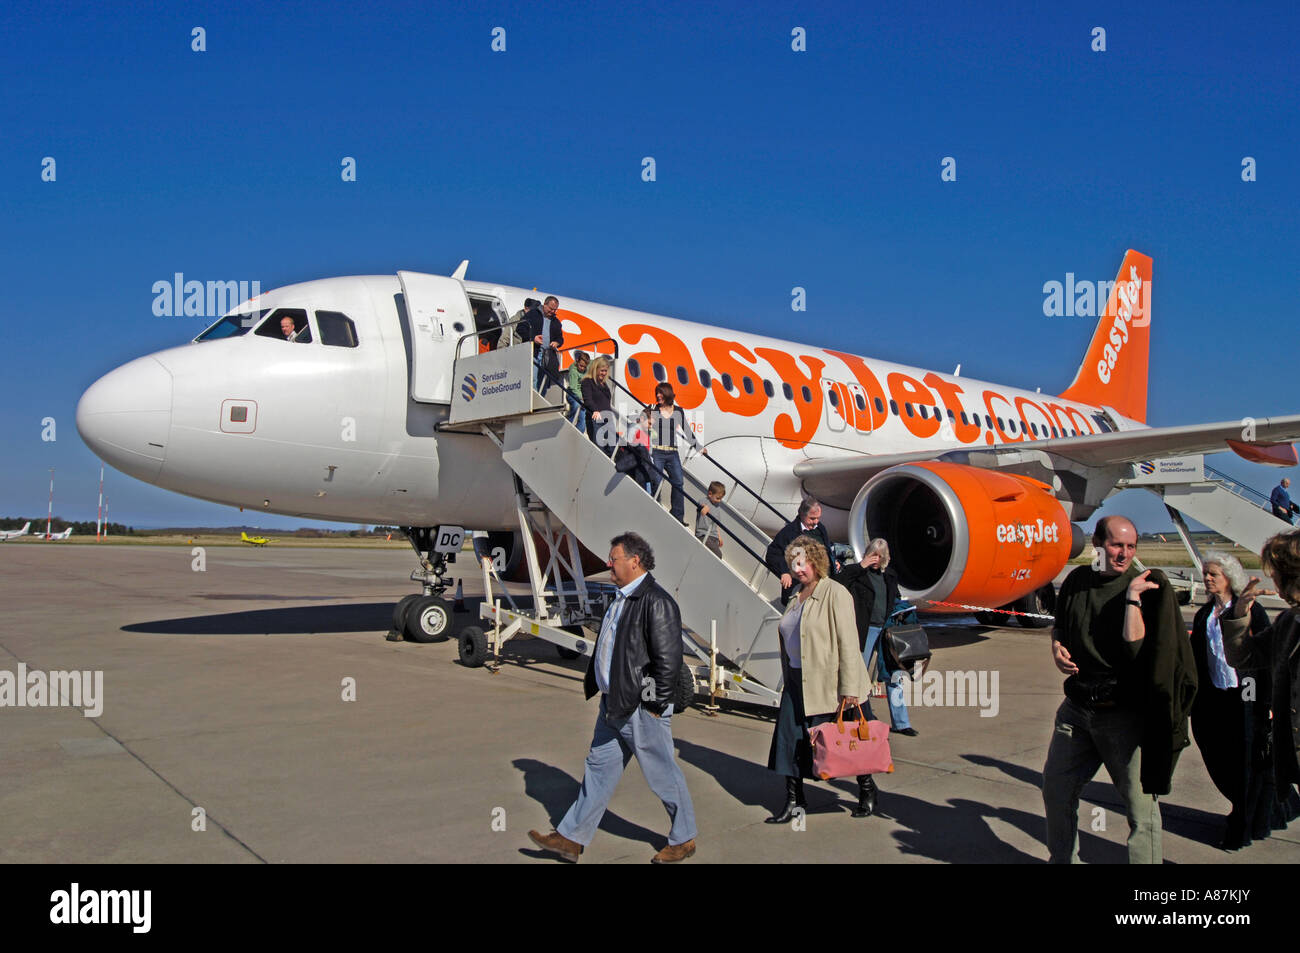 Easyjet Boeing 737-700 Passenger Civil Twin Engined Airliner - Stock Image